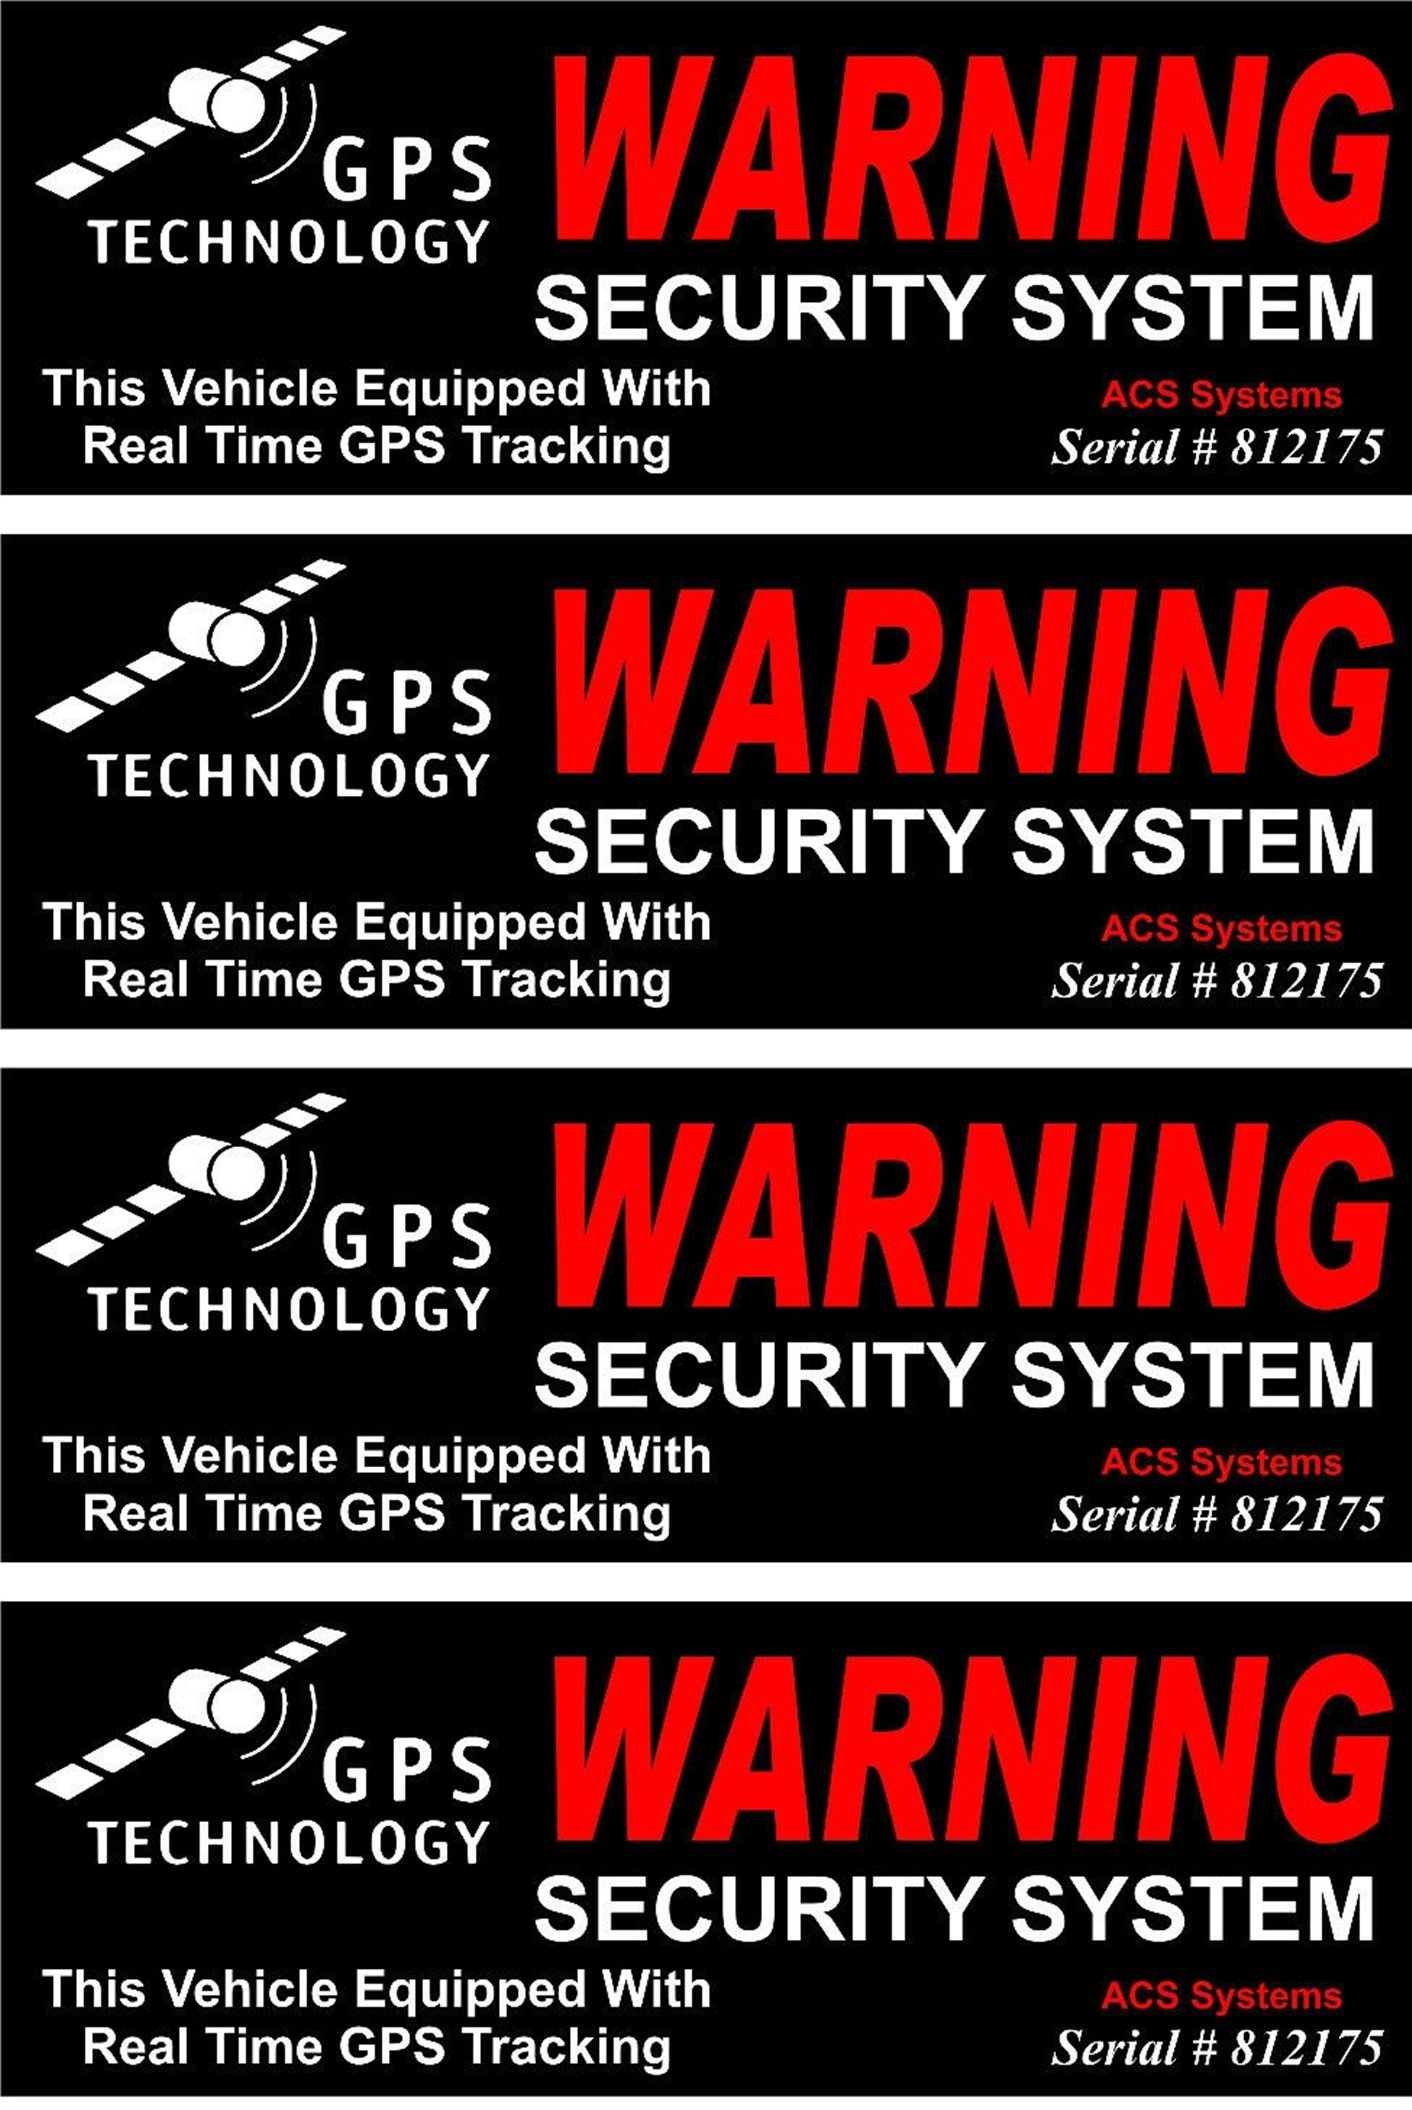 4 Set Credible Unique Warning GPS Tracking Security System Technology This Vehicle Equipped with Real Time Inside Adhesive Sticker Sign Under Cameras Protect Video Surveillance Decals Size 4.5''x1.5''